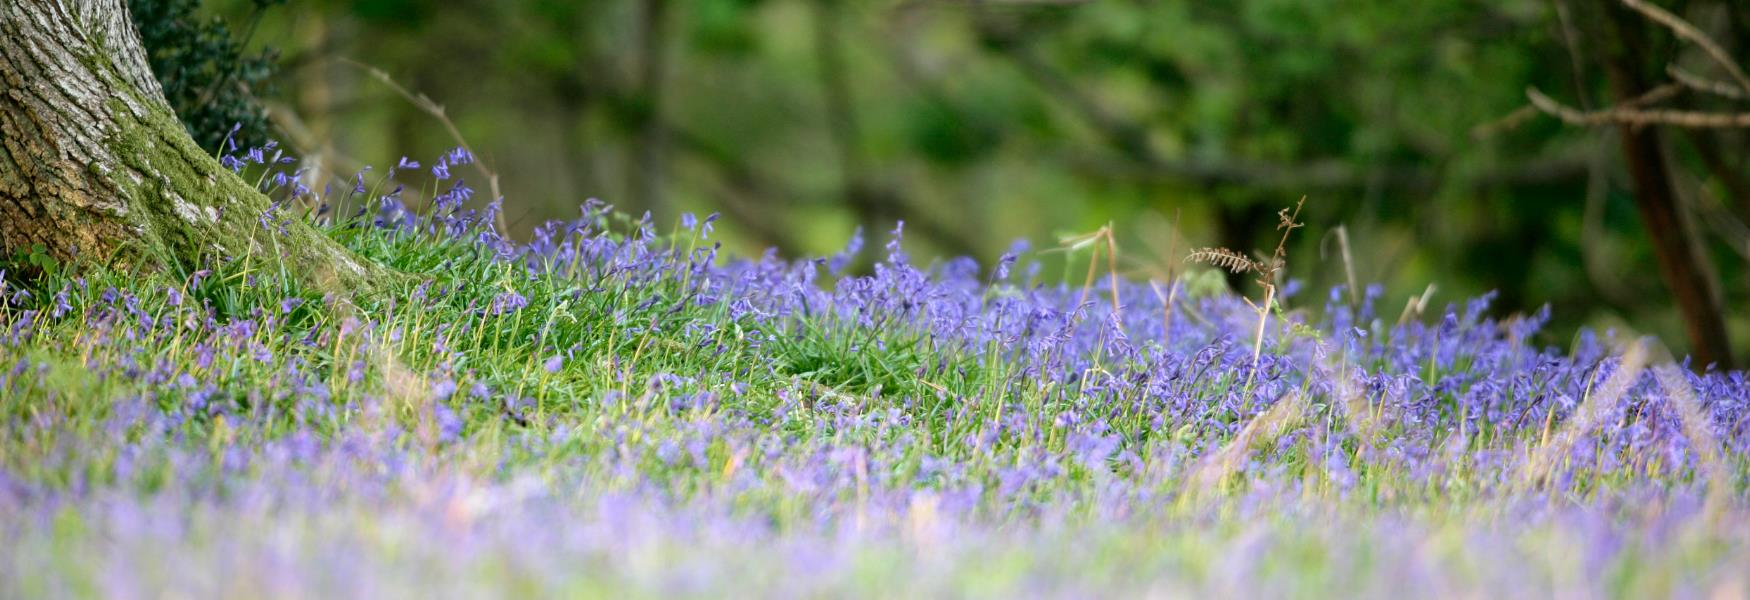 bluebells filling the forest floor in the new forest